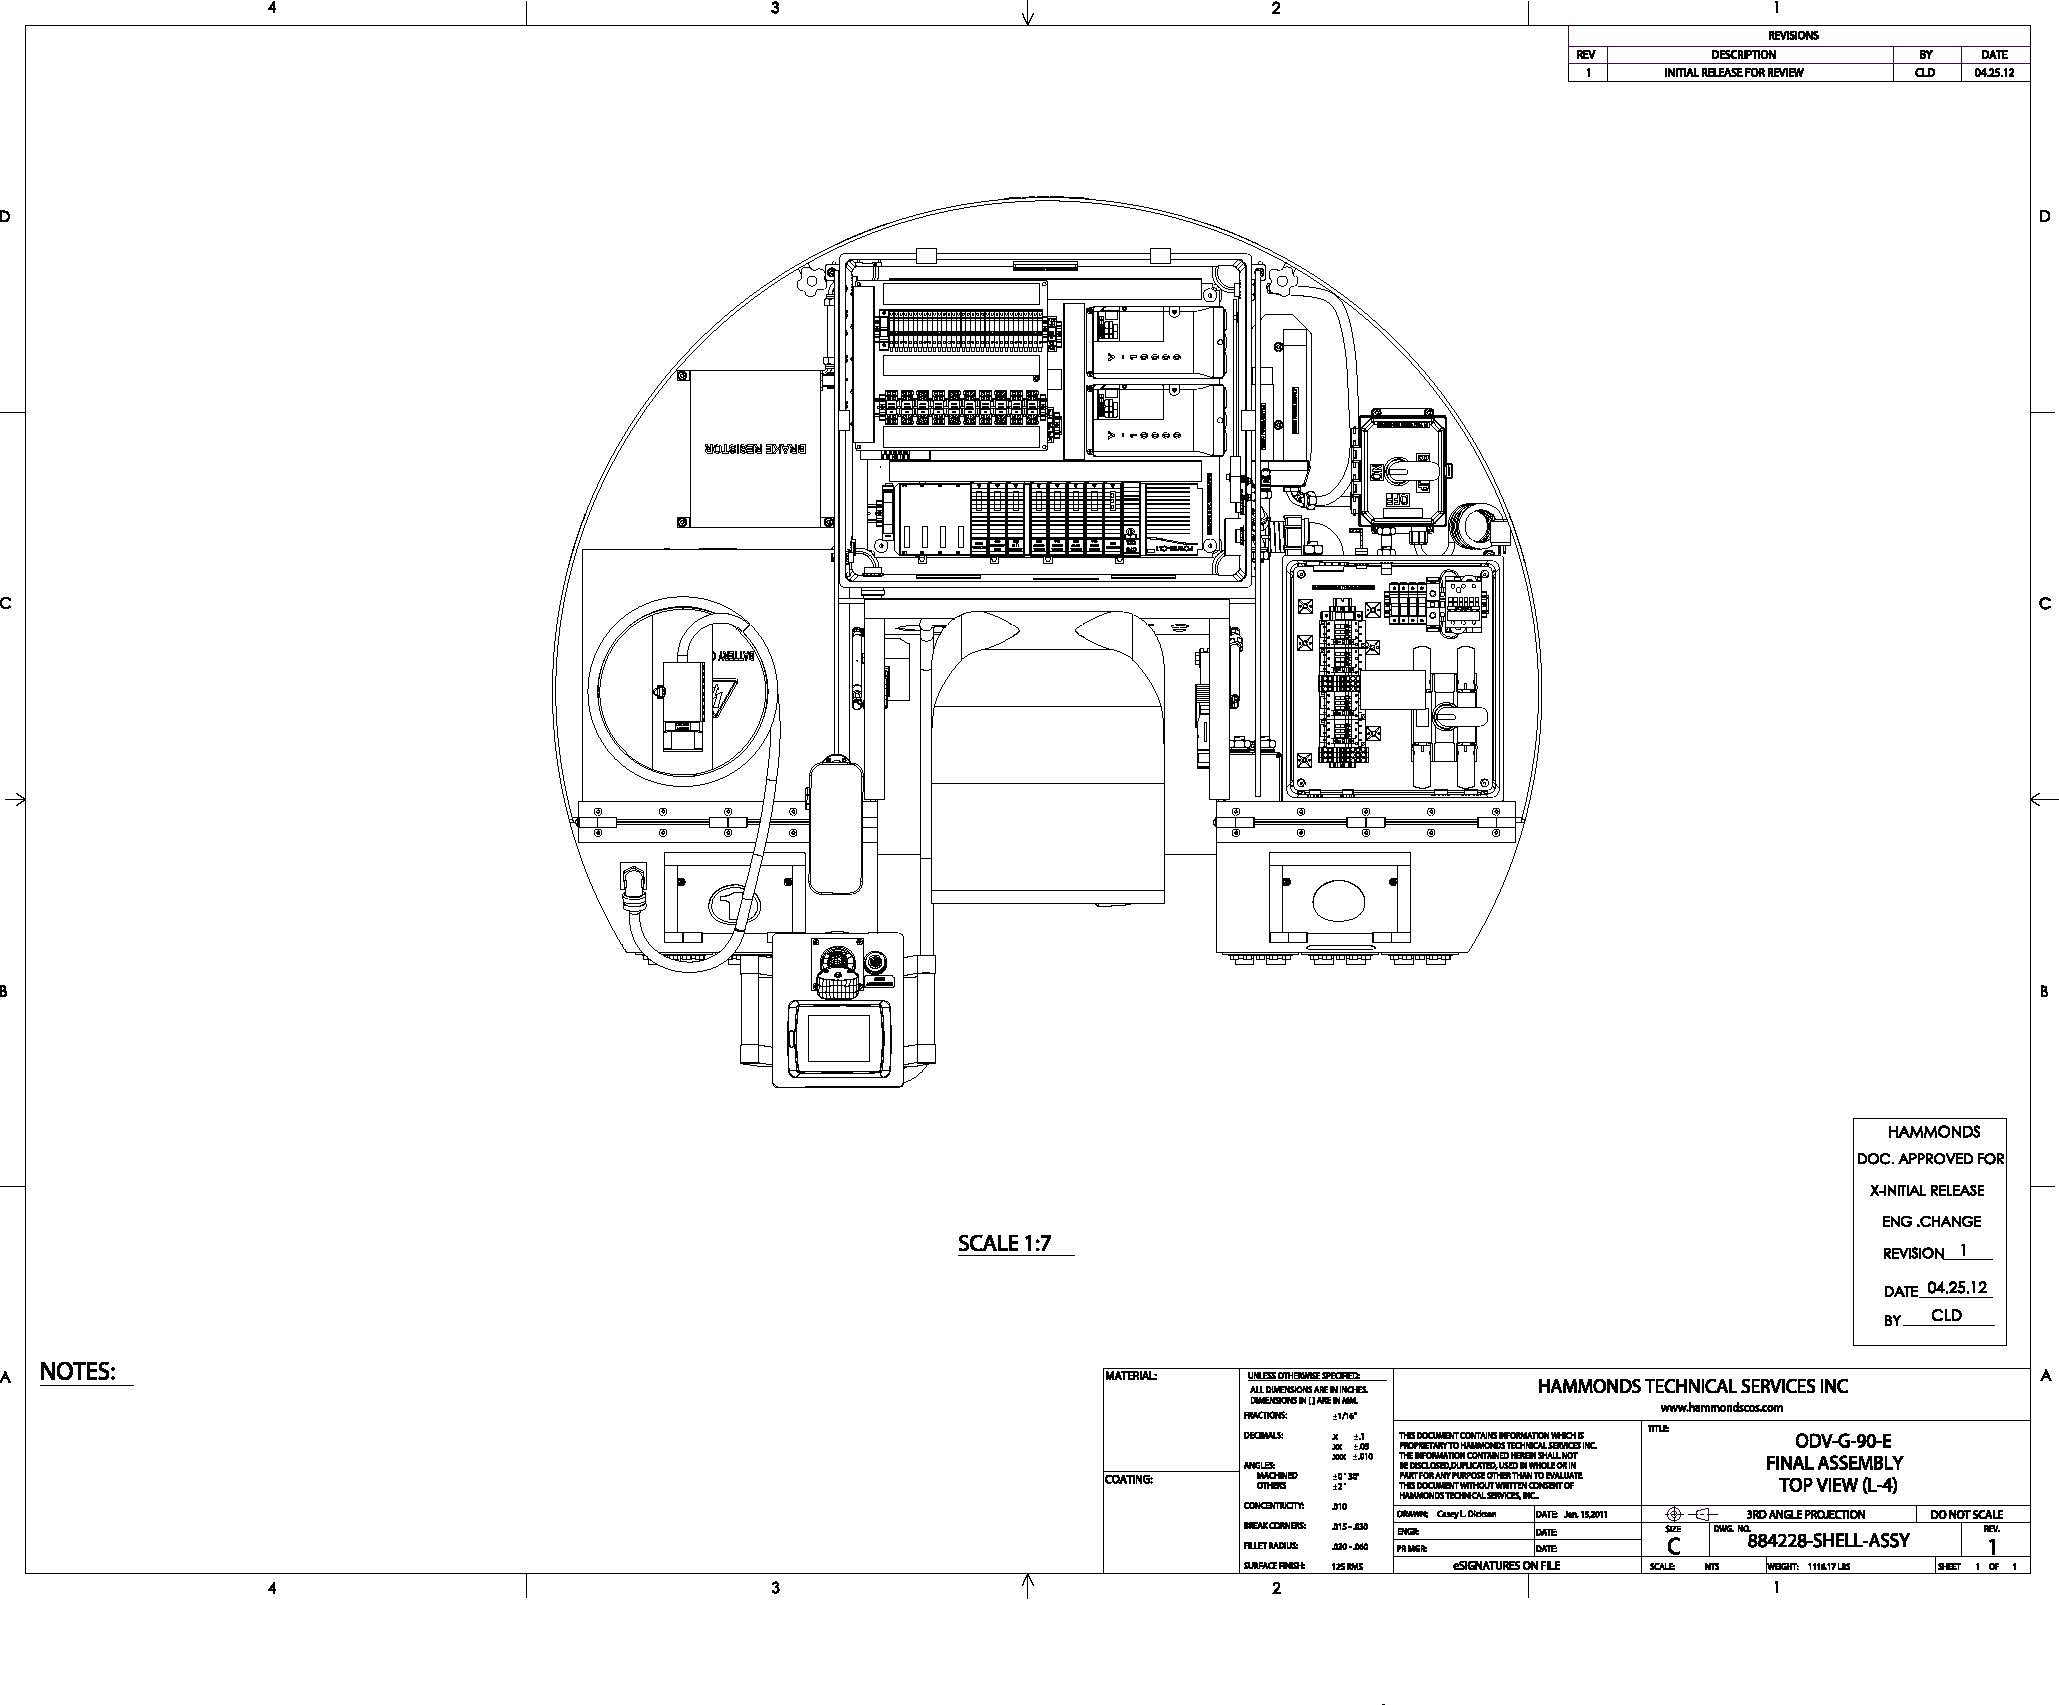 Photo : Boeing 777 Floor Plan Images. Photo Airbus A380 Floor Plan ...